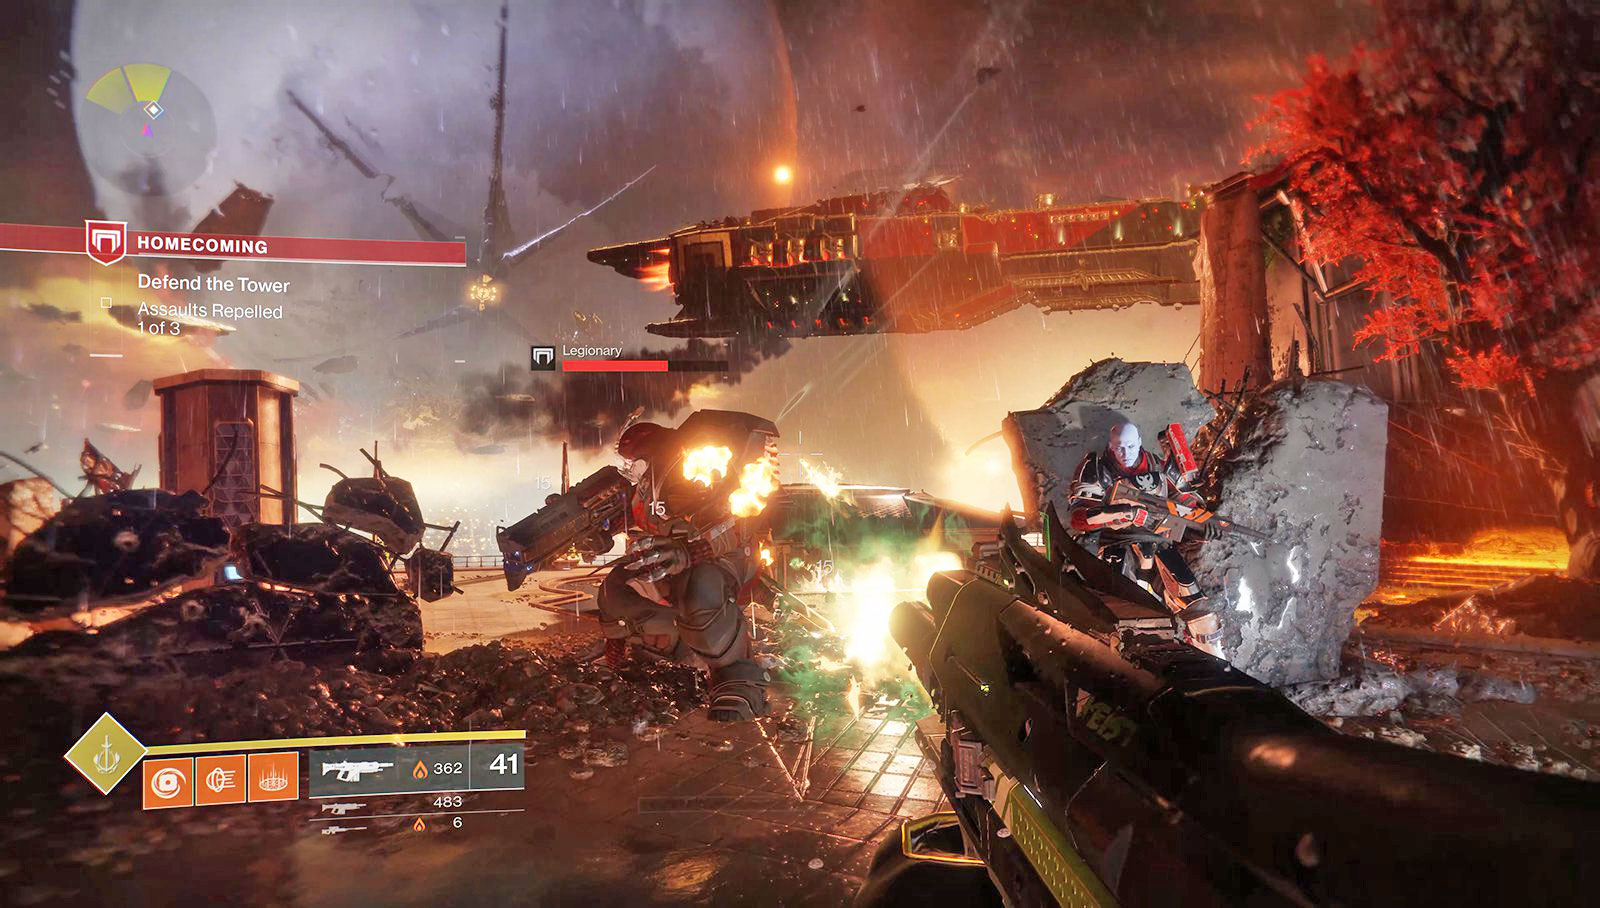 Play of the game destiny 2